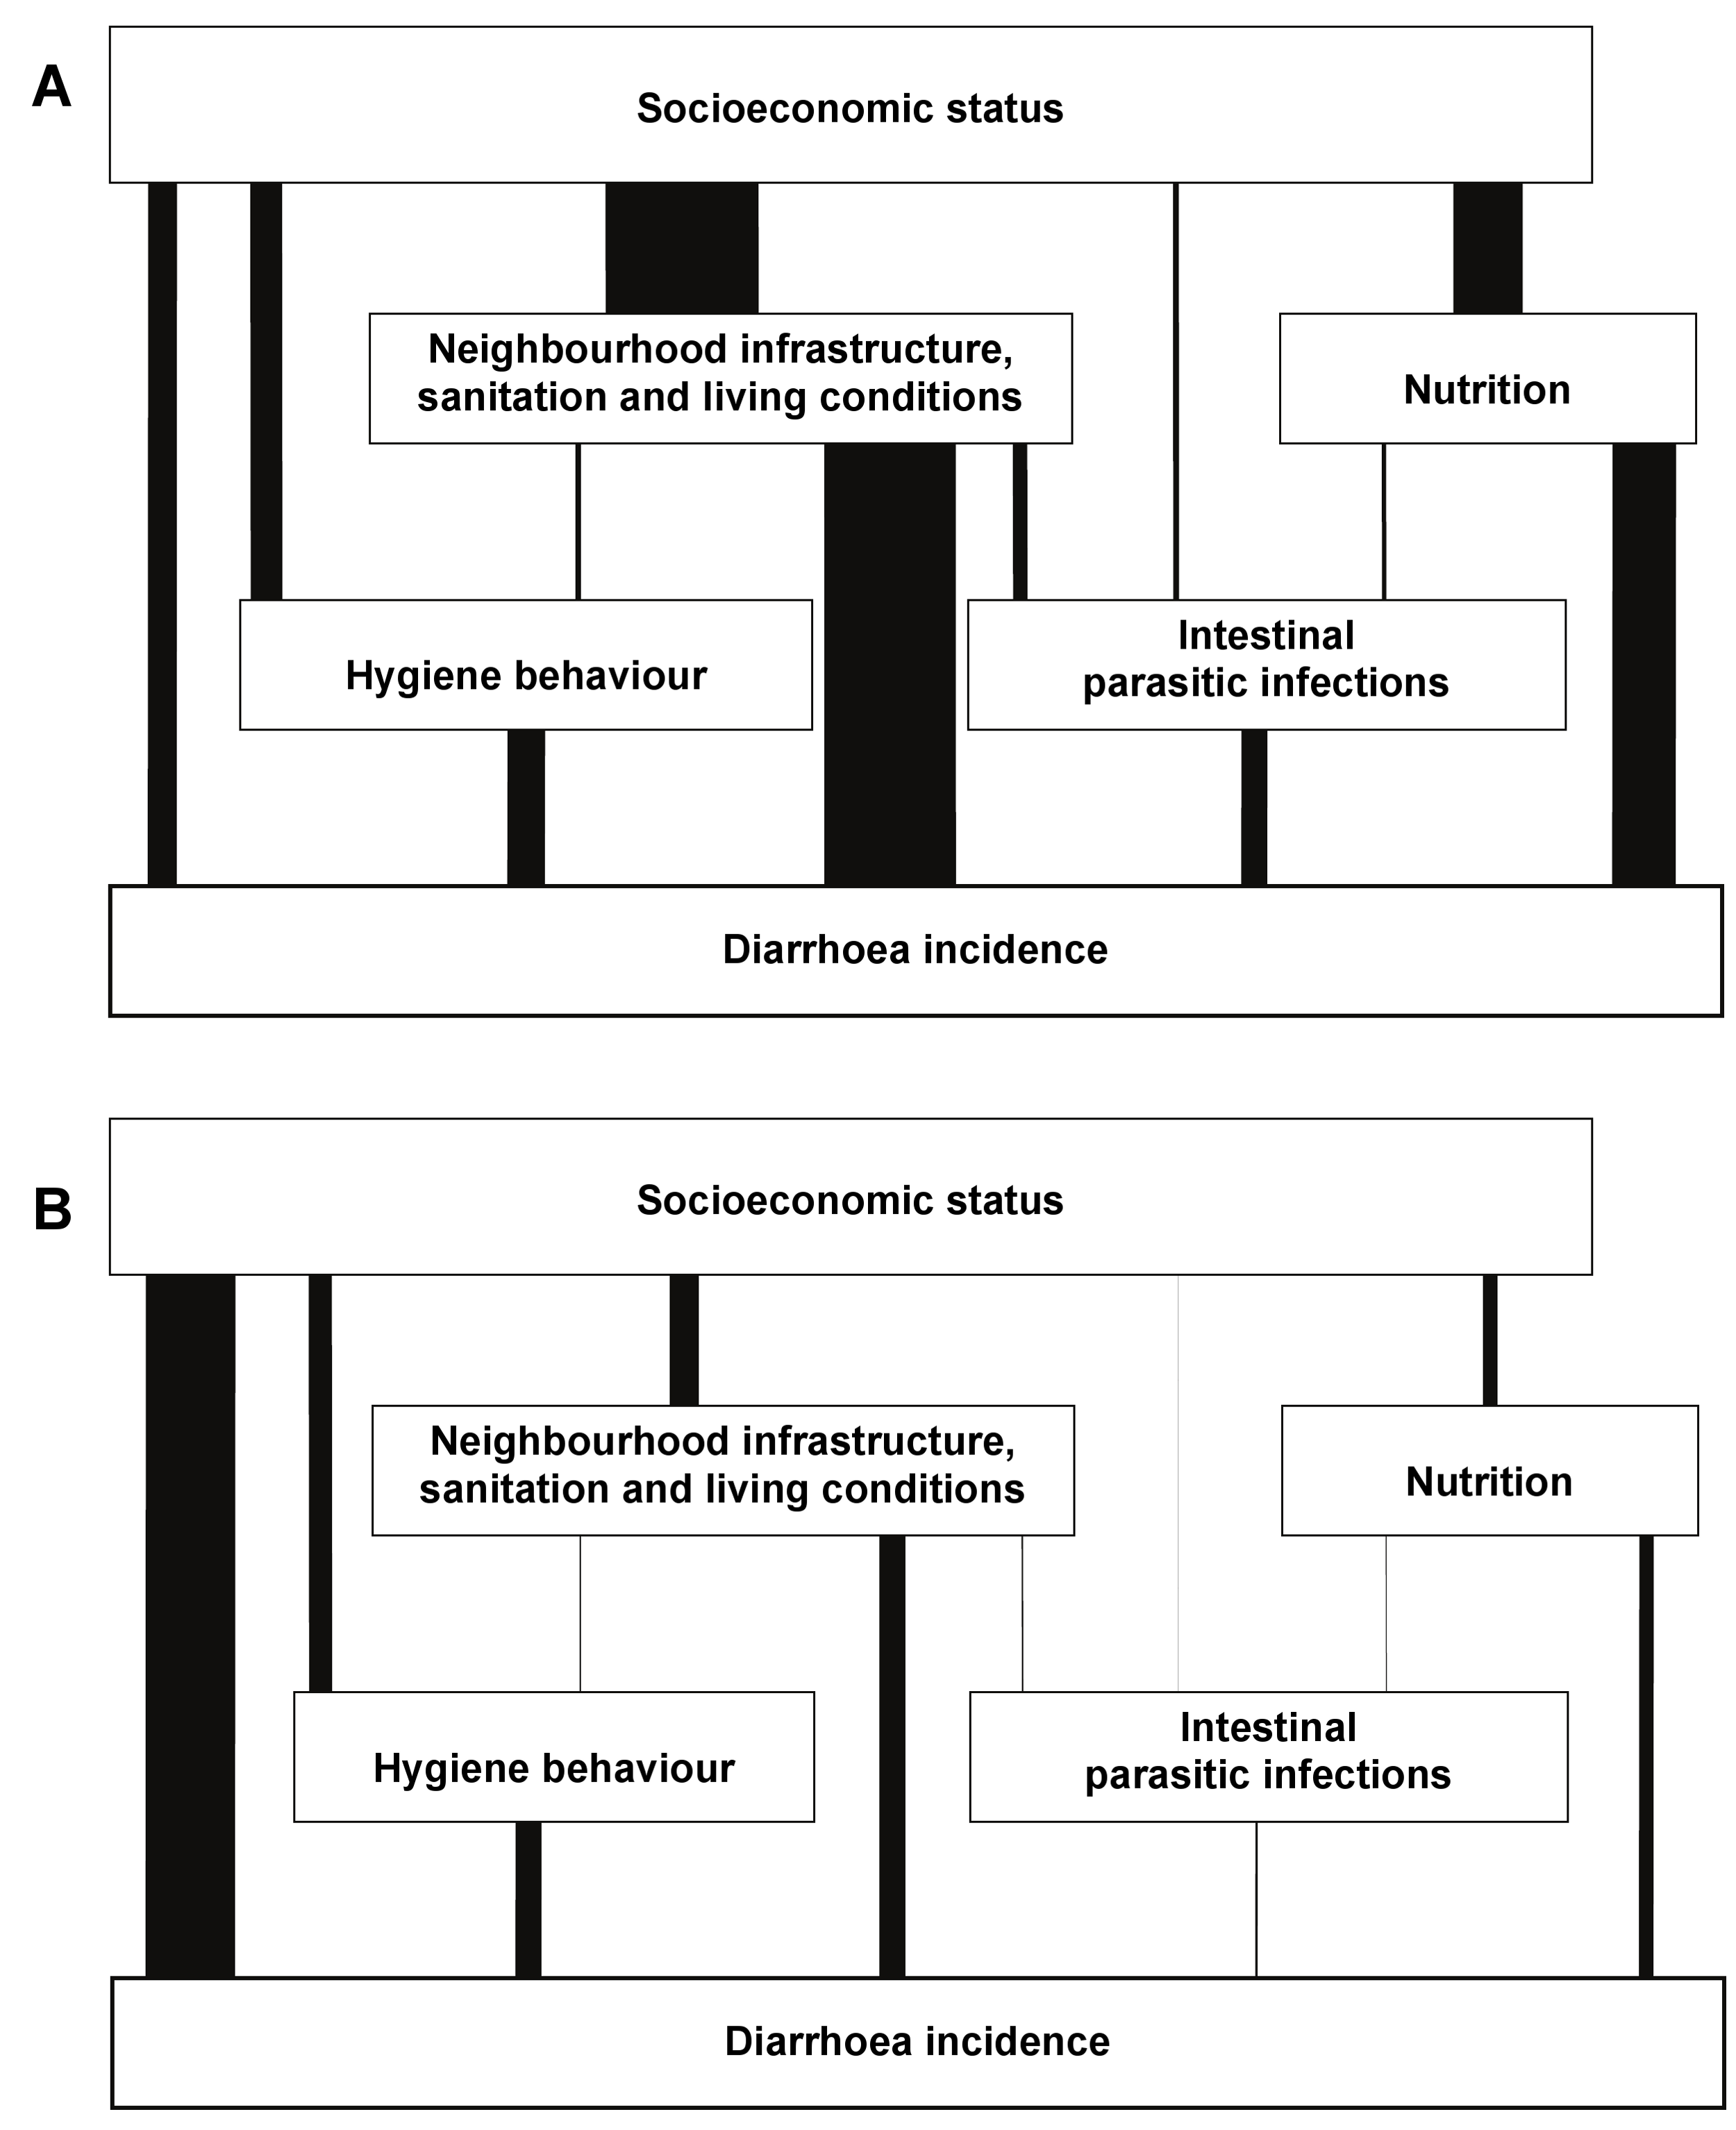 Determinants of diarrhoea in Salvador, Brazil, 1997–2004: Results of a hierarchical effect decomposition analysis.